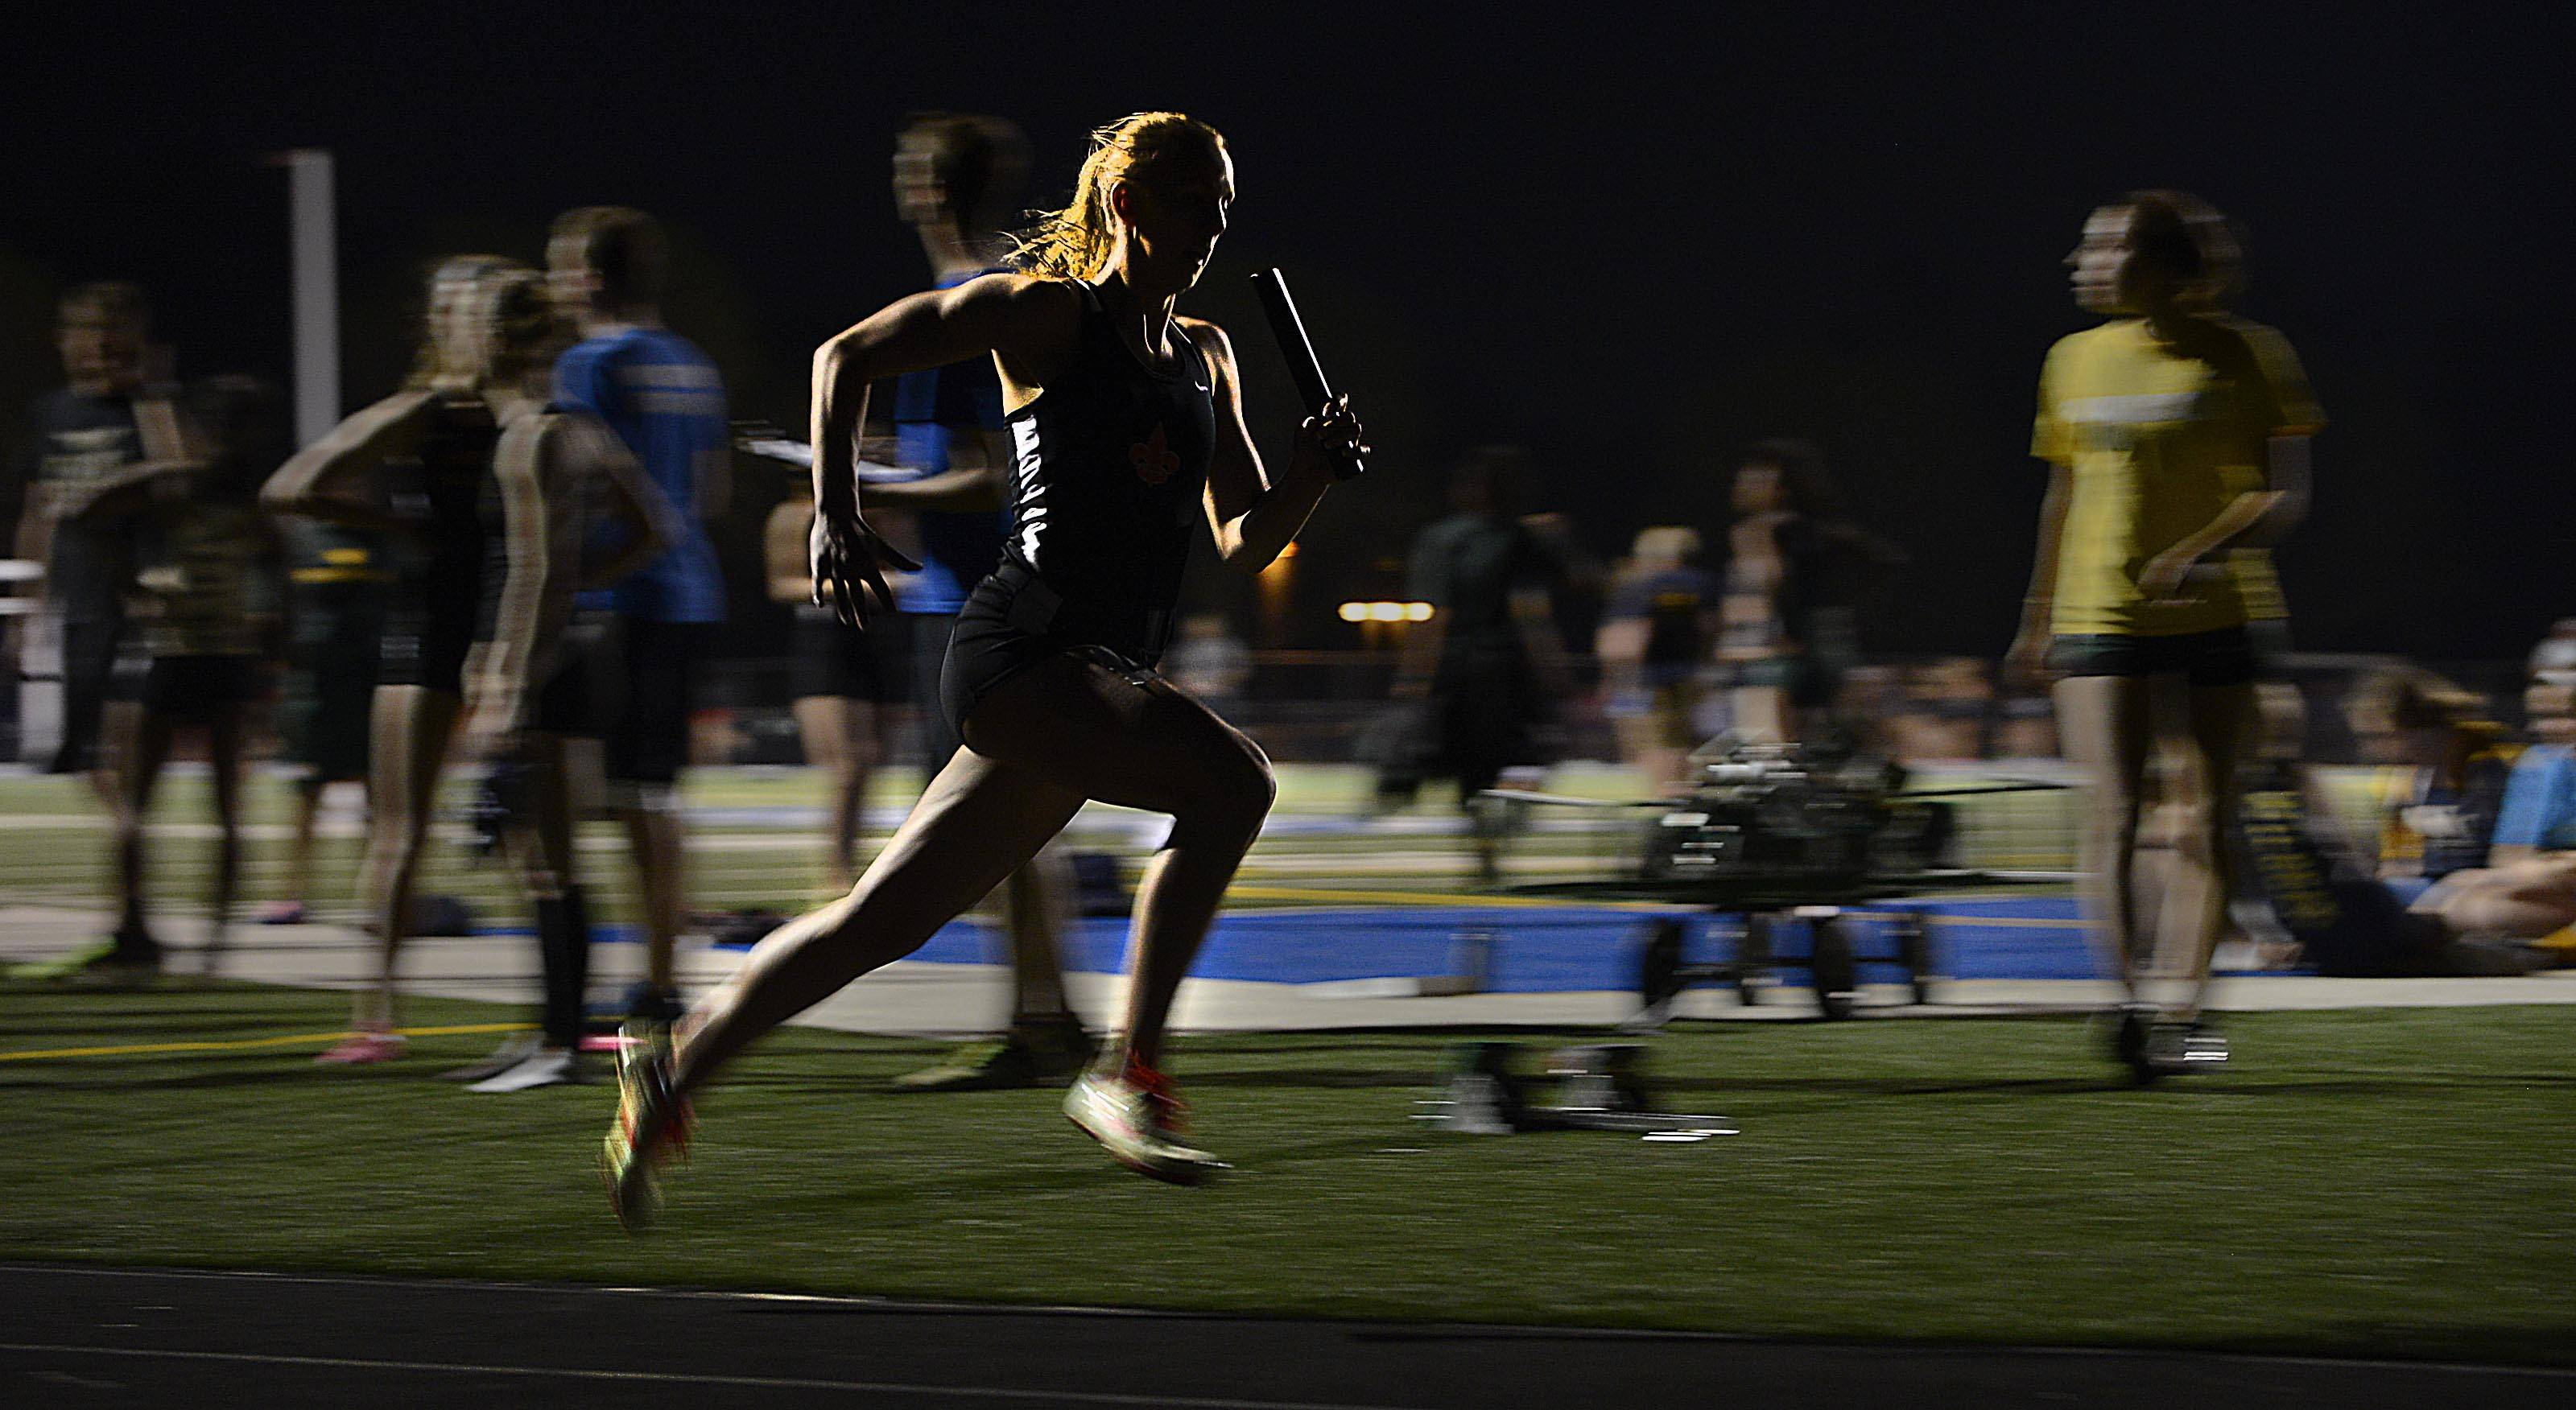 Backlit by the stadium lights, St. Charles East's Elizabeth Chmelik streaks around turn one of her anchor leg of the winning 4x400 meter relay Thursday at the Upstate Eight Conference girls track meet at Geneva High School. The relay team set a personal best time and the Saints won the meet.